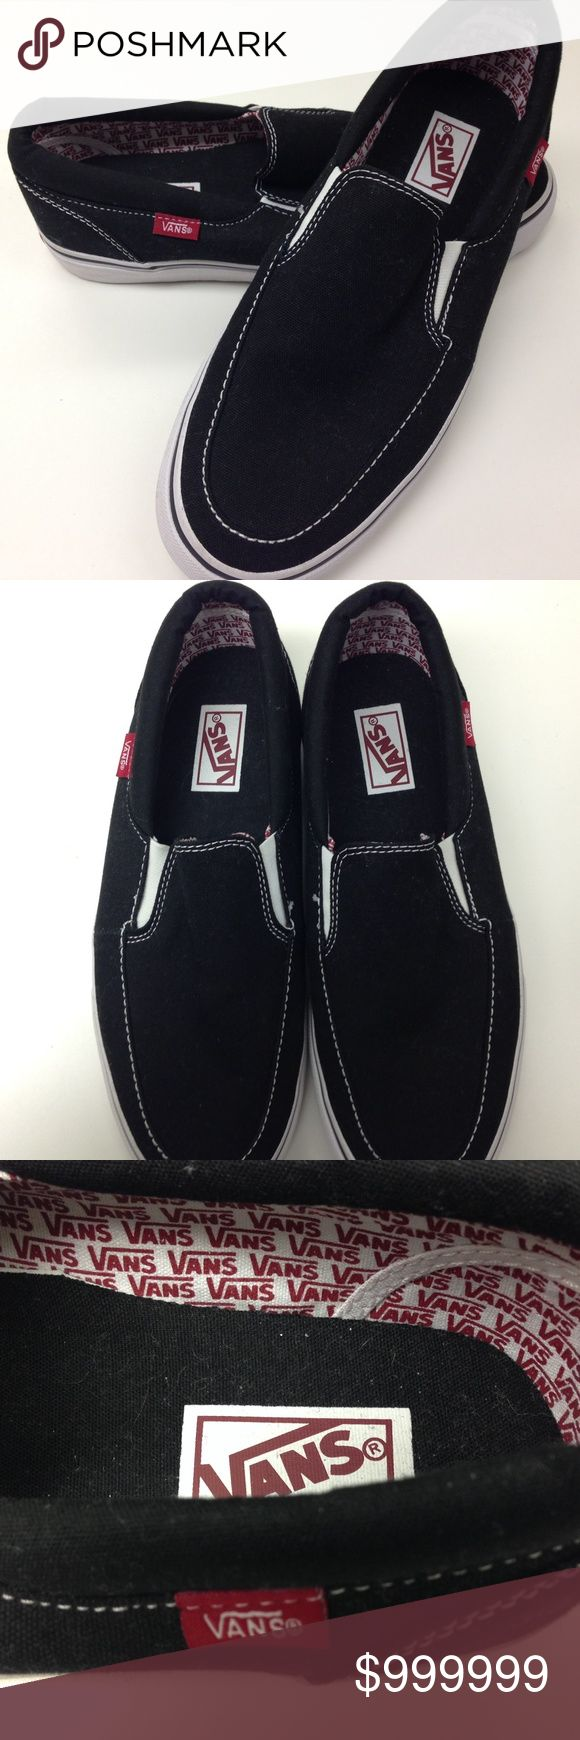 ⏰1 HR SALE⏰ Men's Vans Slip on Sneakers Never Worn Men's Vans Black slip on sneakers. Never worn. Slightly snug for 9. Vans Shoes Sneakers